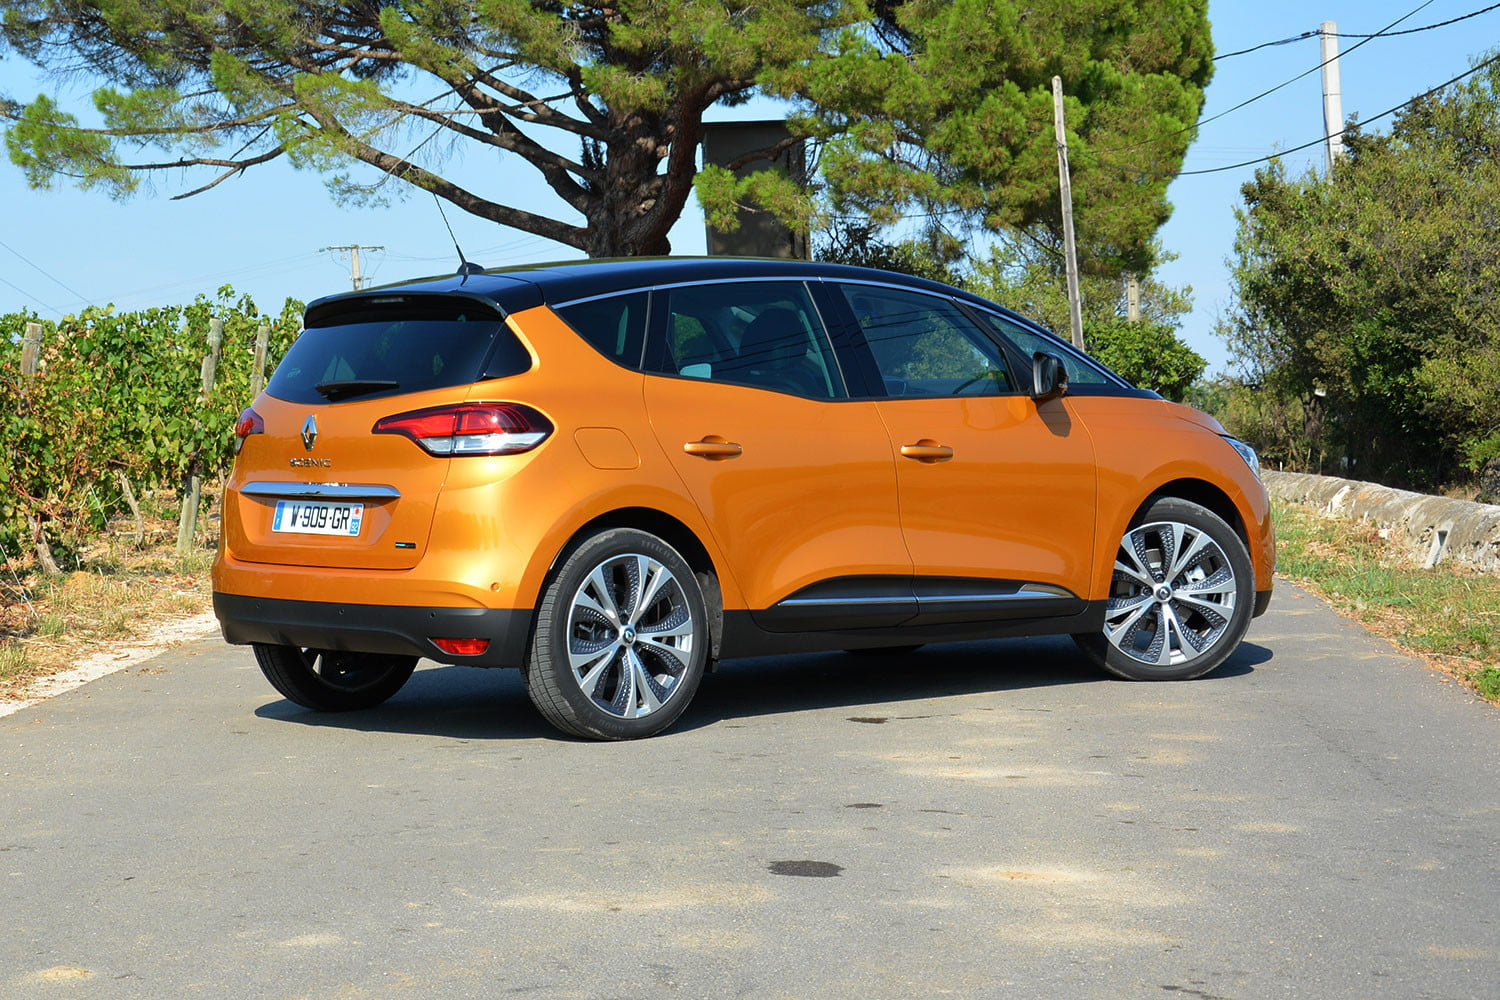 renault scenic hybrid news specs driving impressions digital trends. Black Bedroom Furniture Sets. Home Design Ideas